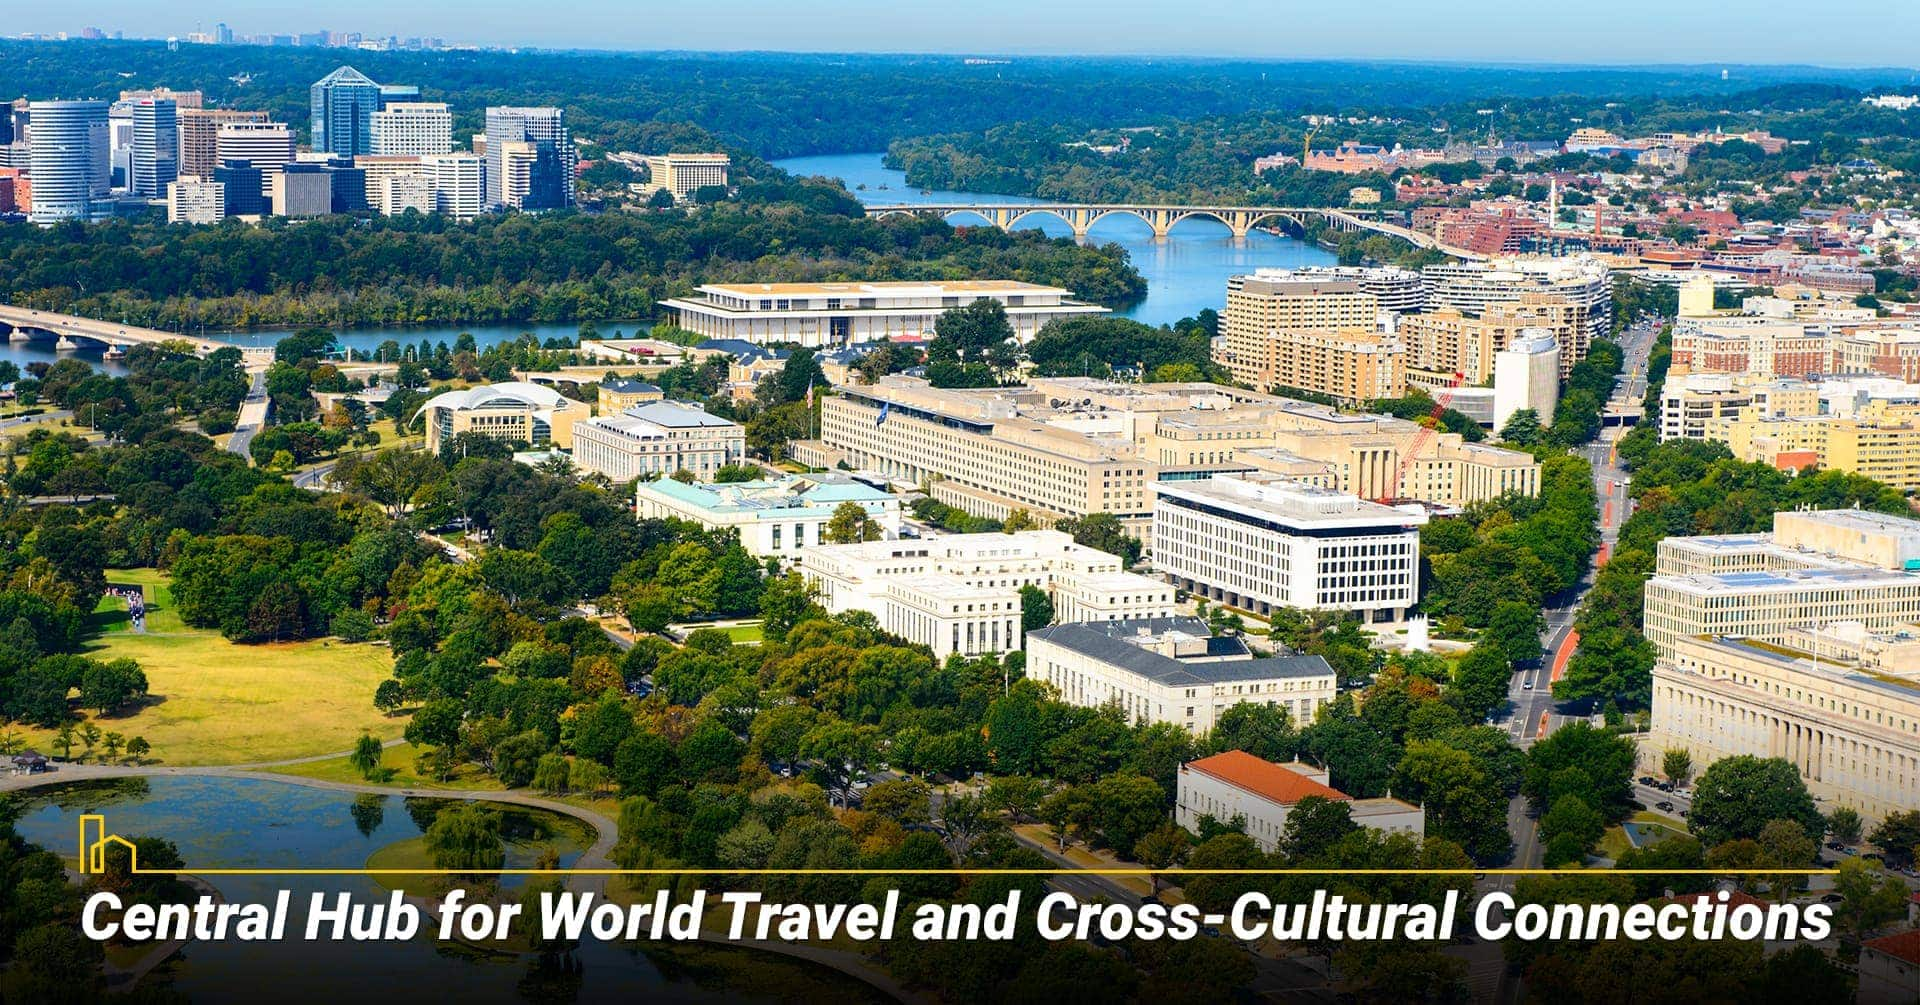 Washington DC is a Central Hub for World Travel and Cross-Cultural Connections